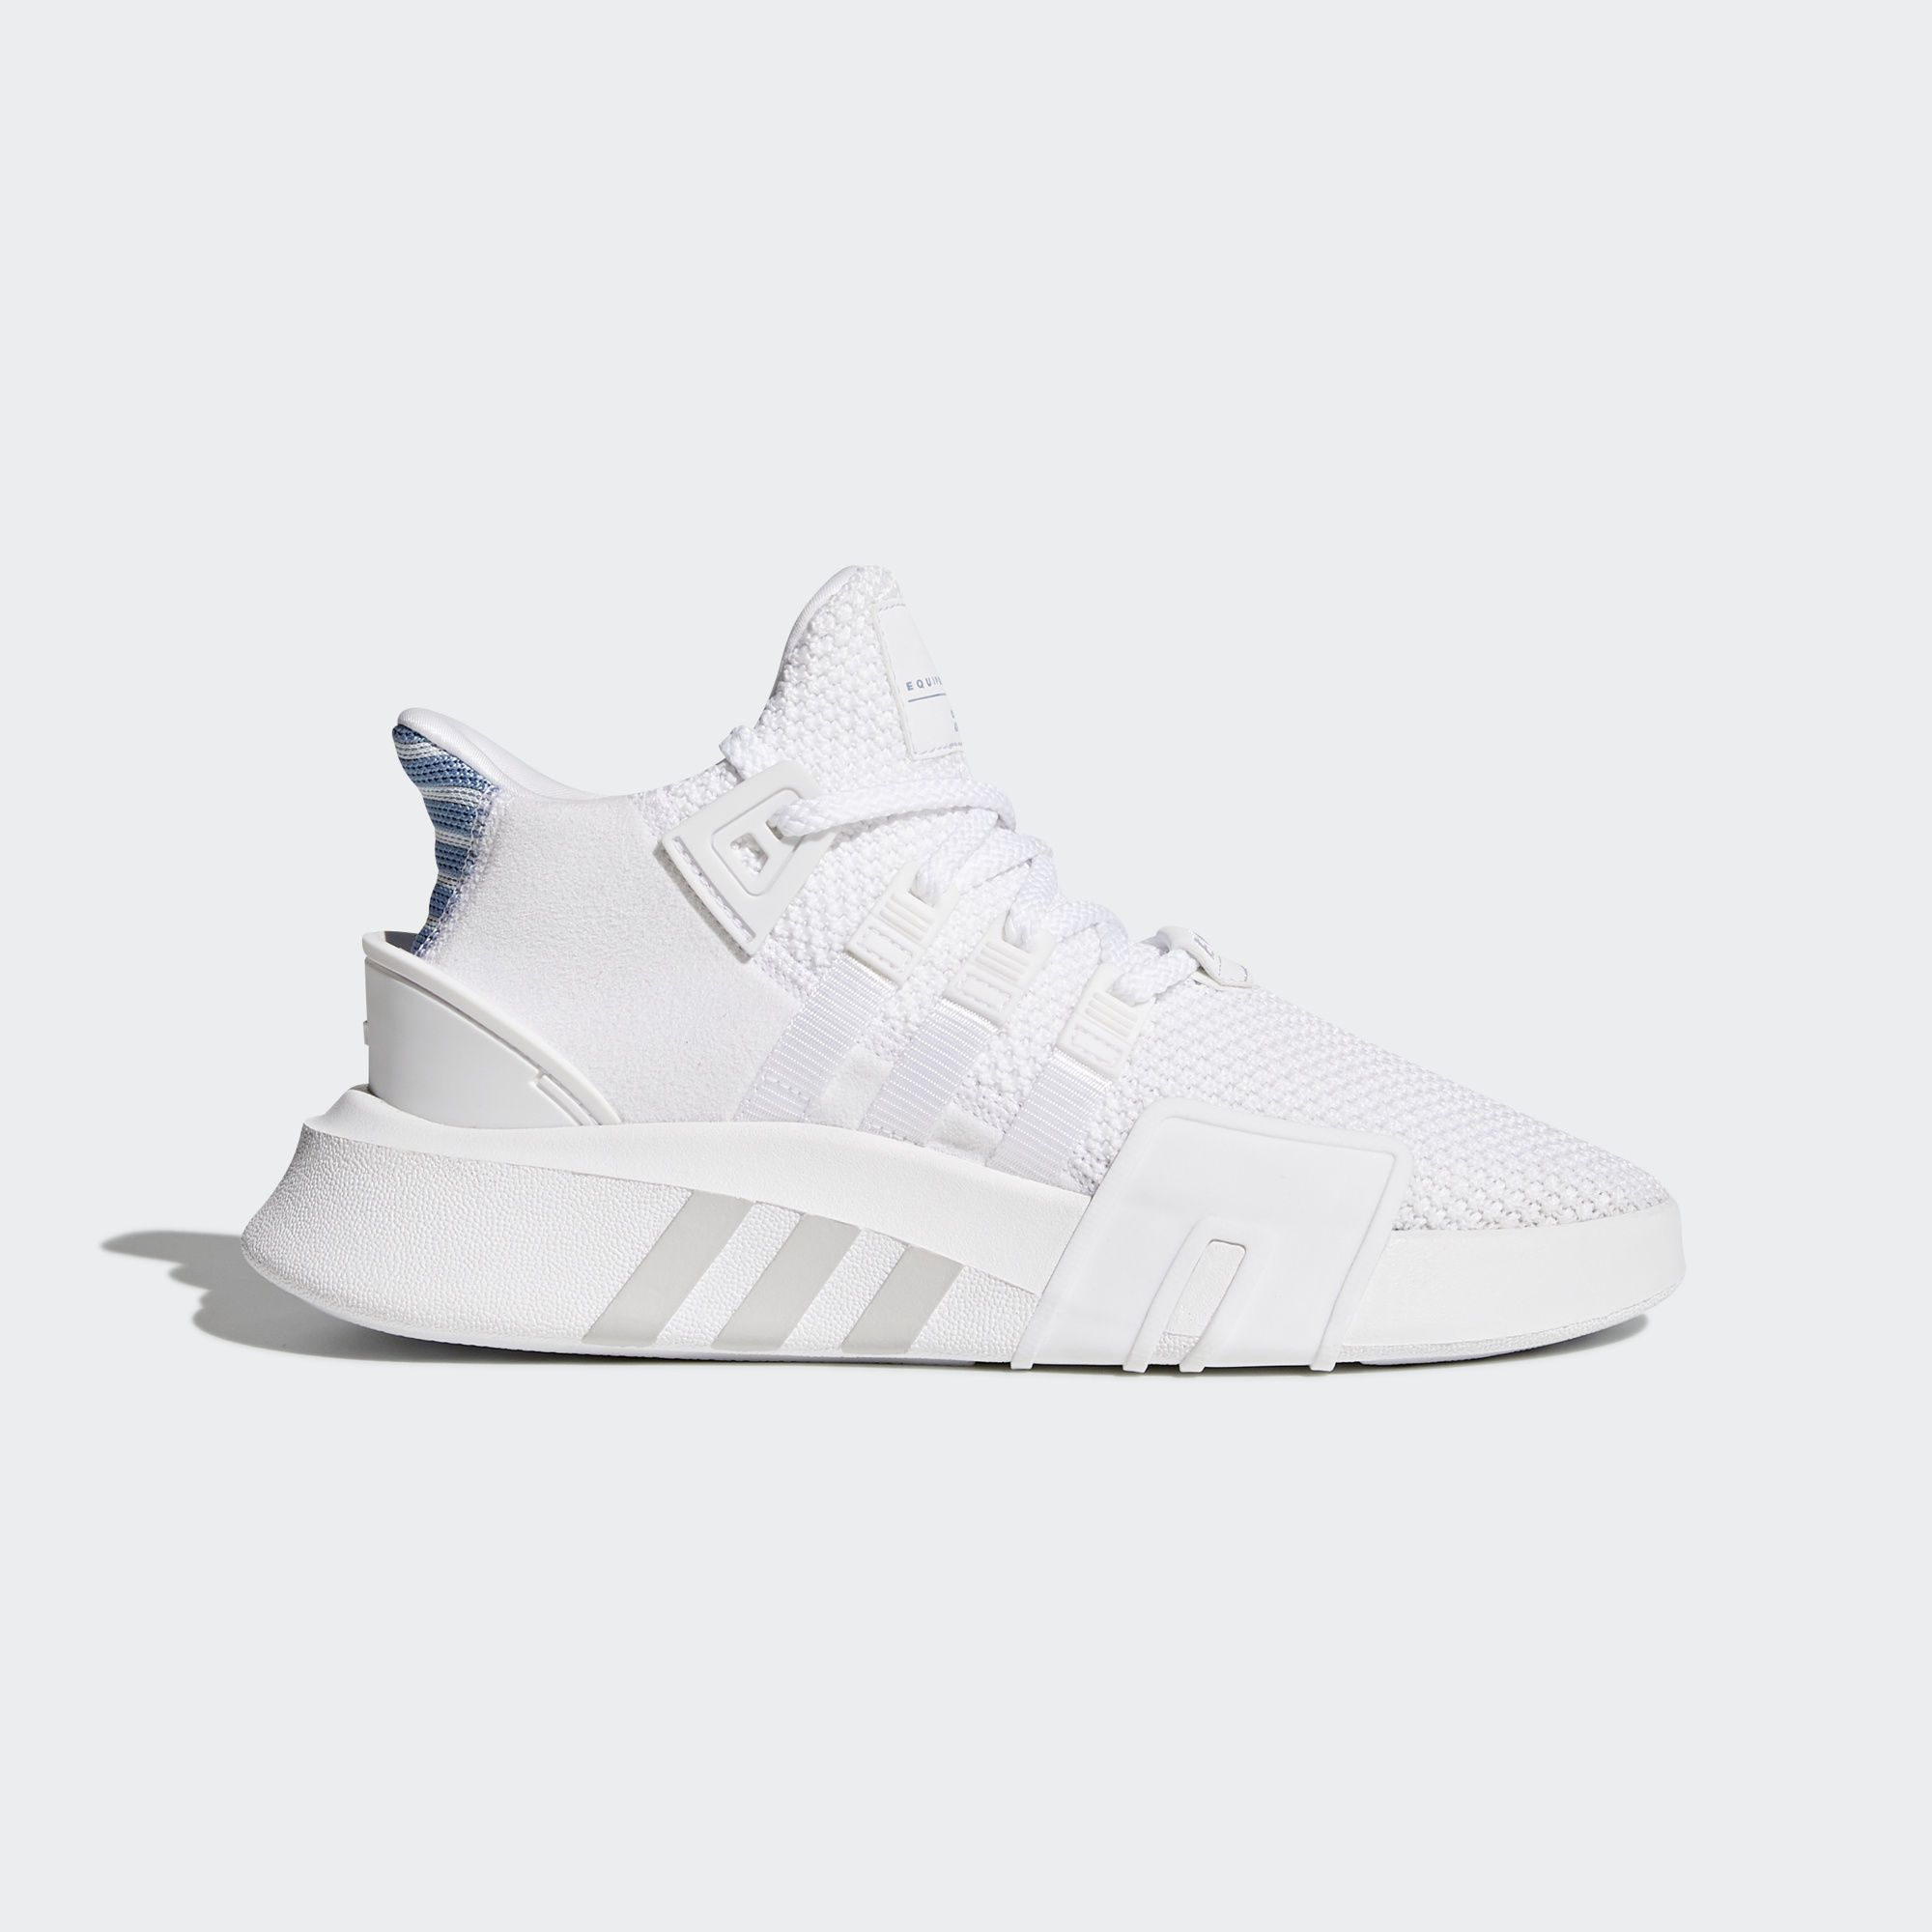 adidas EQT Basketball ADV Shoes White | adidas US in 2019